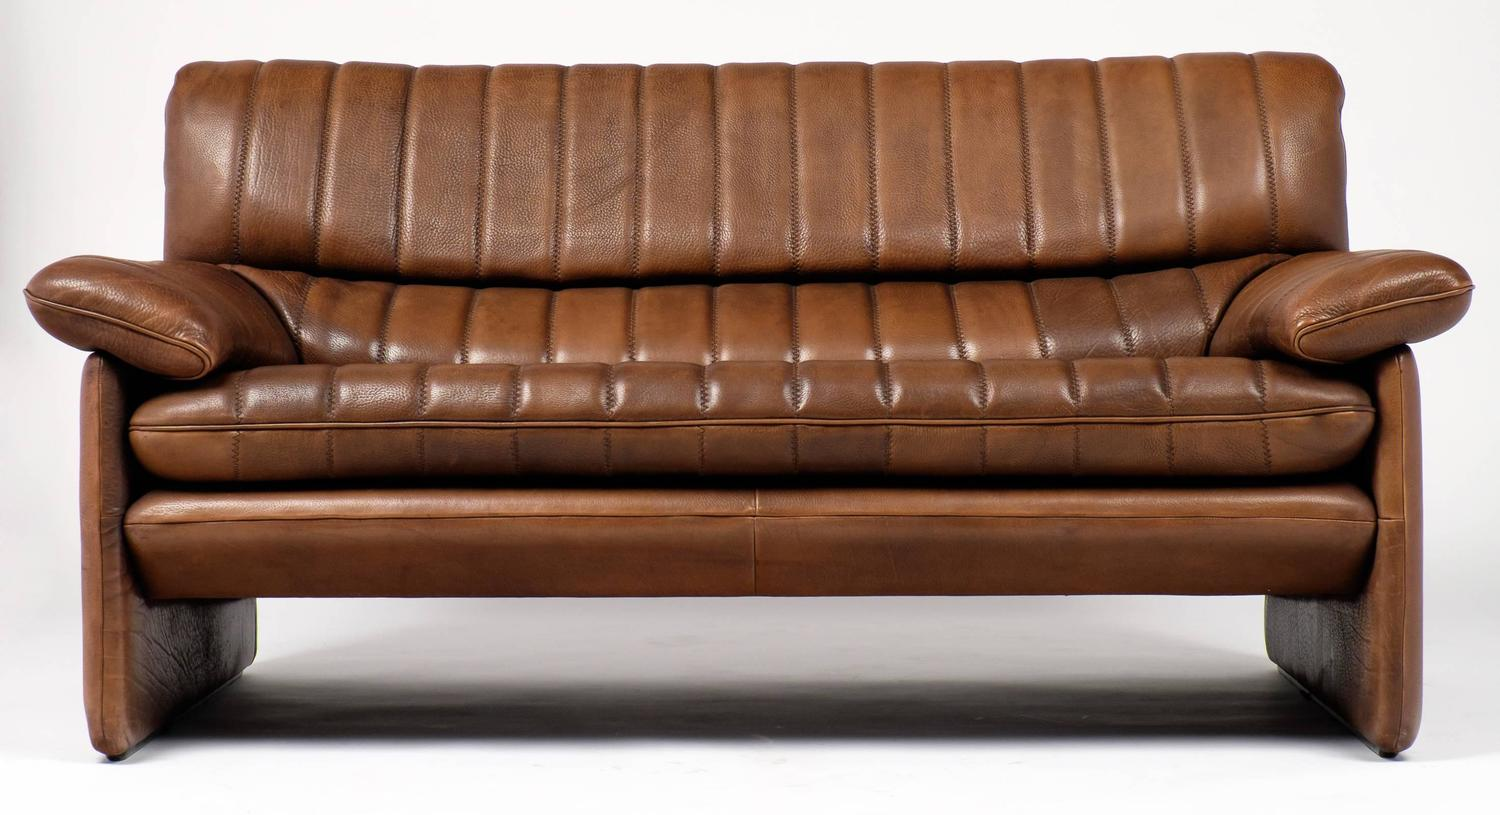 Phenomenal Vintage De Sede Ds 85 Soft Leather Sofa At 1Stdibs Pabps2019 Chair Design Images Pabps2019Com